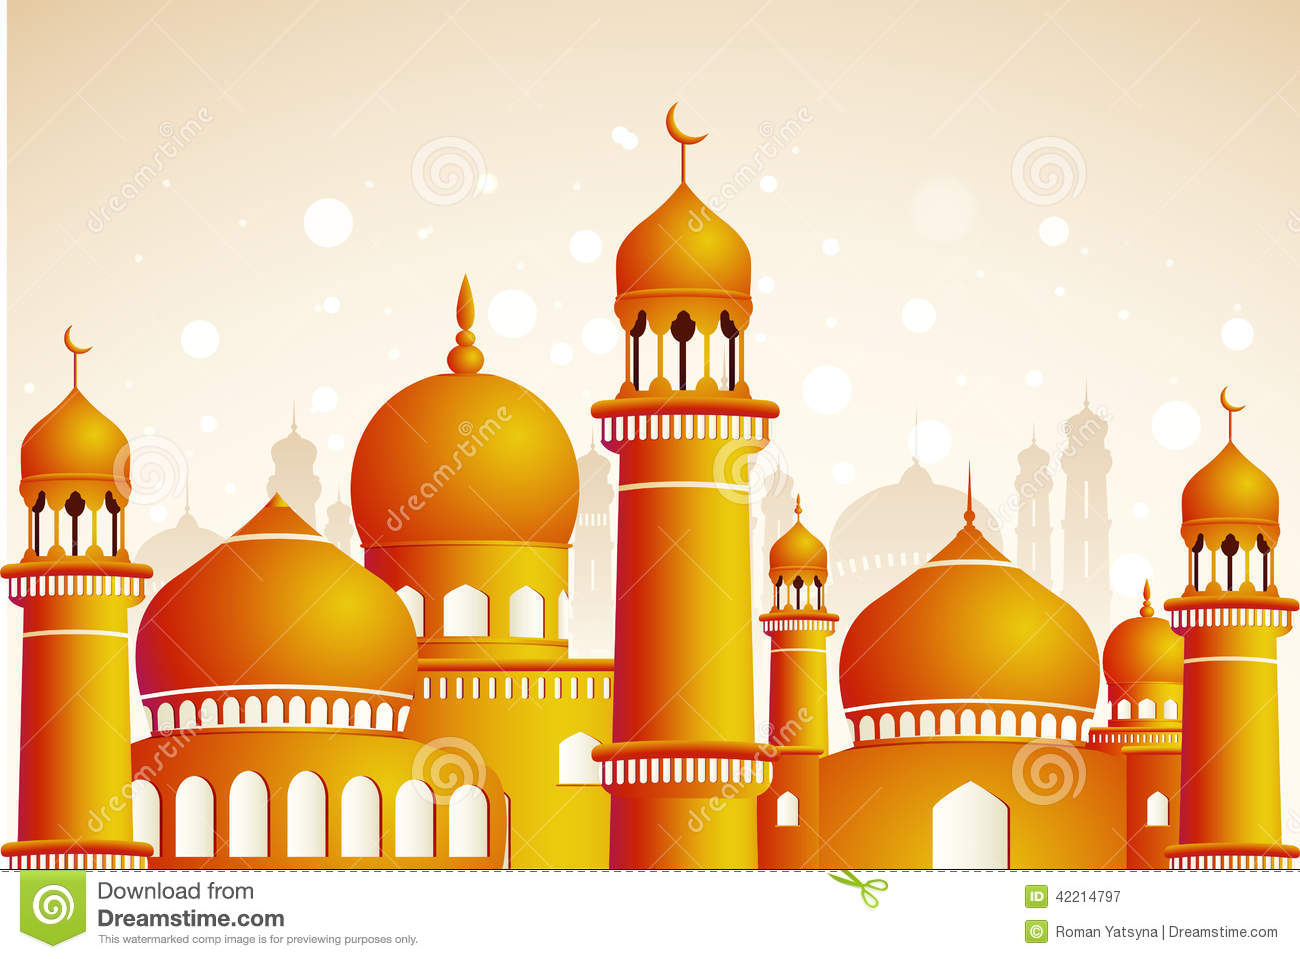 Wallpaper download eid mubarak - Arabic Mosque On Shiny Light Background Stock Vector